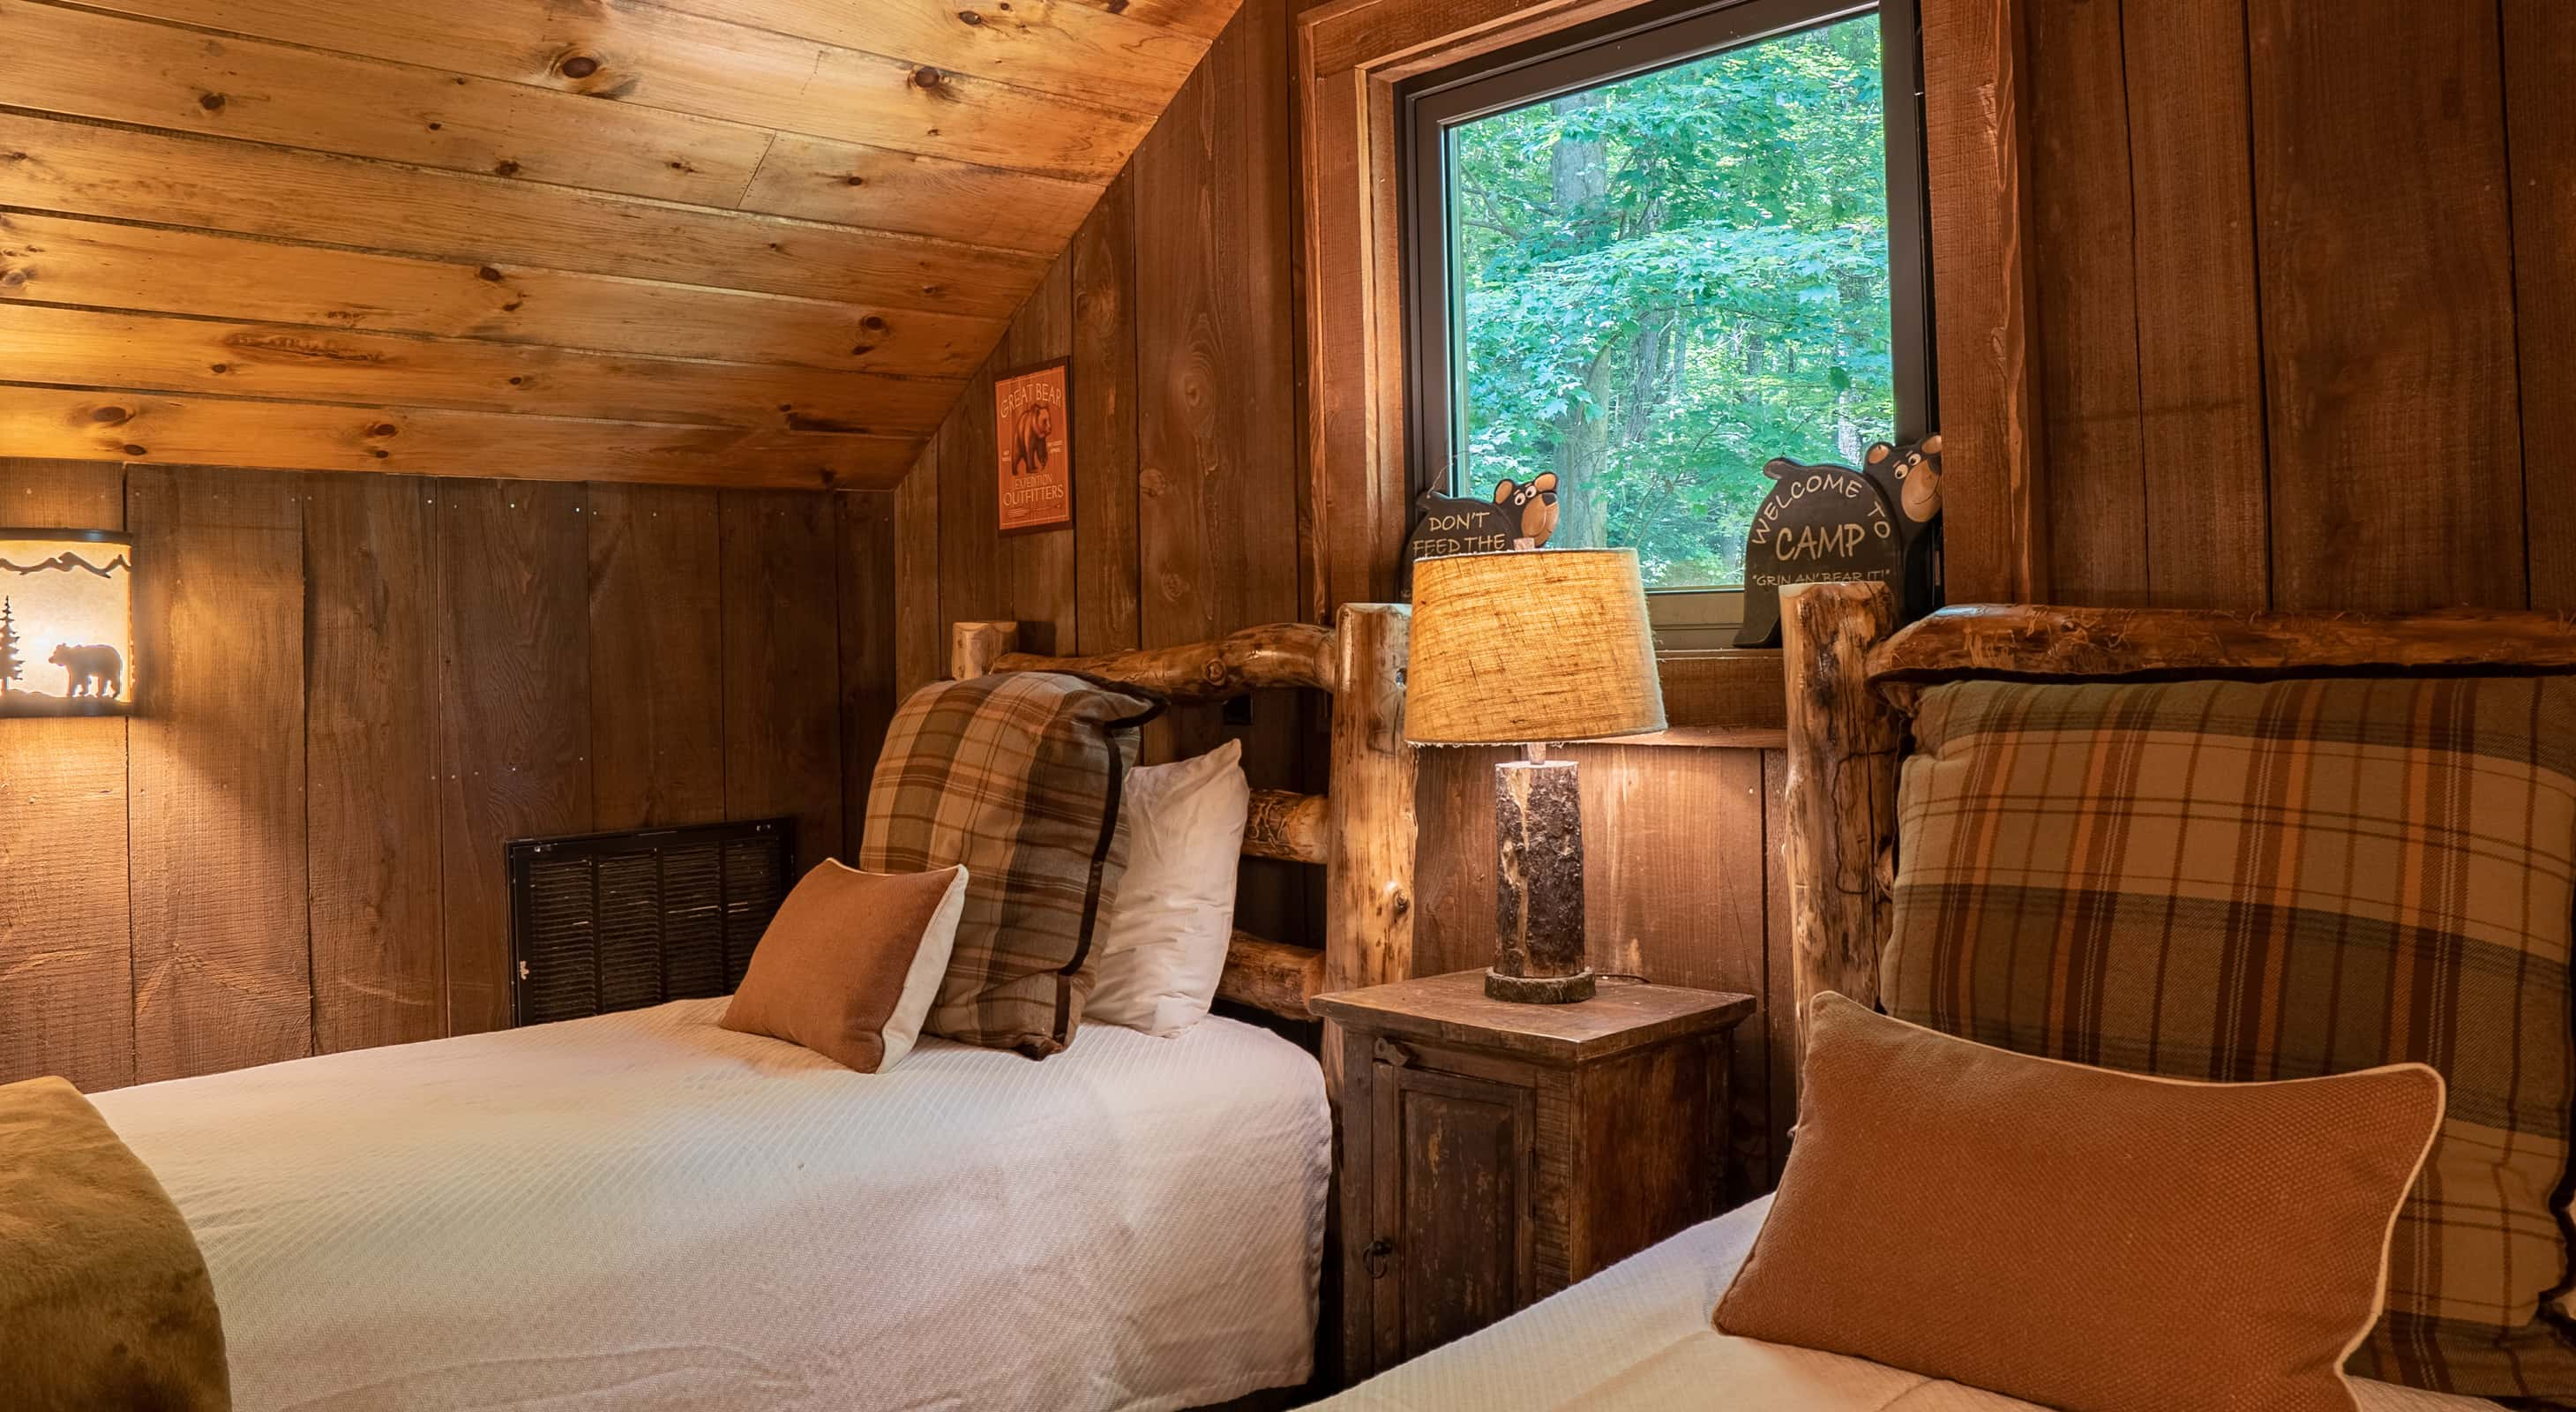 Two beds in the hunting cabin loft